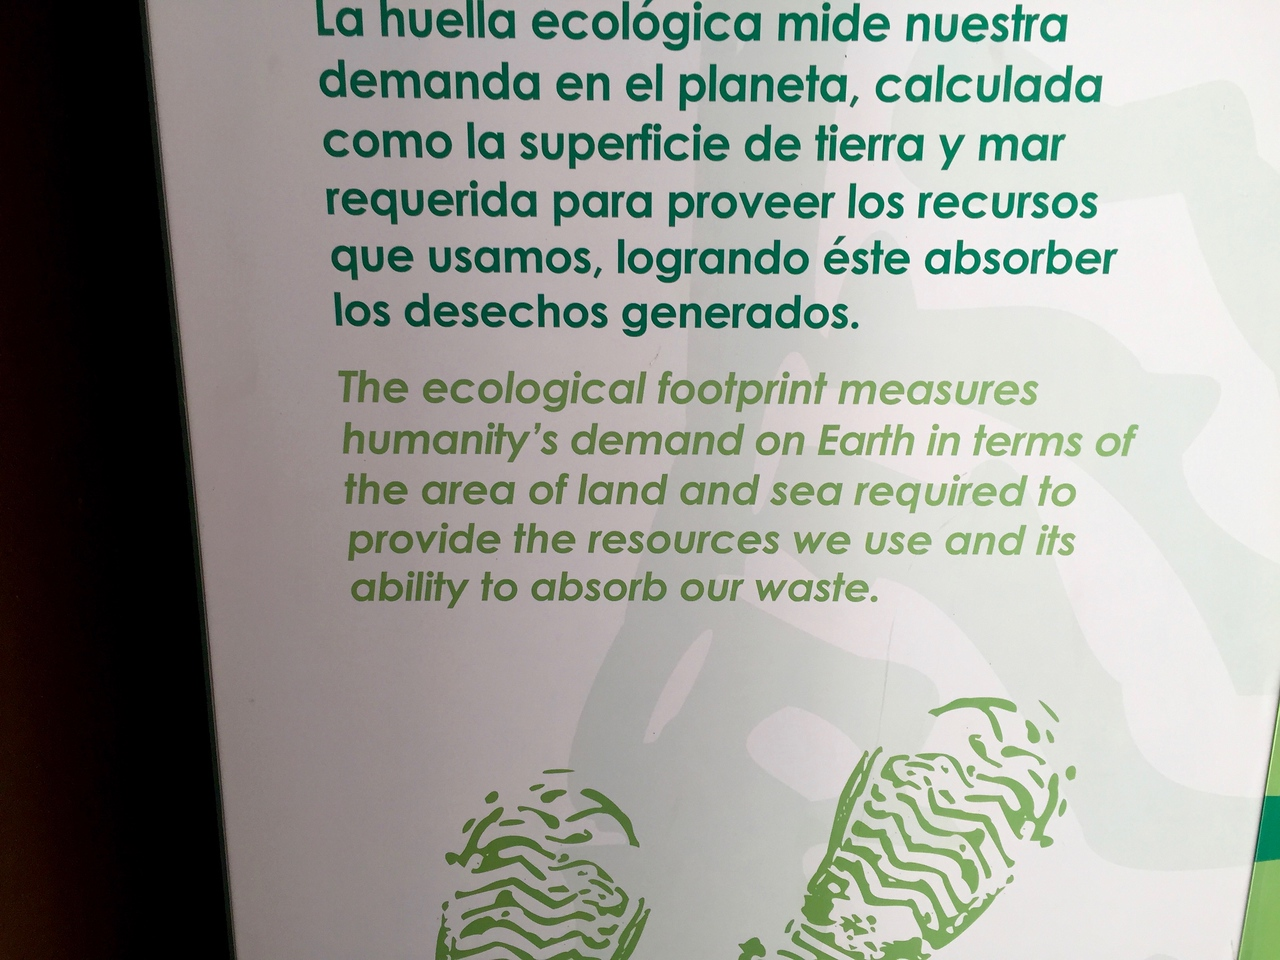 Explanation of ecological footprint.